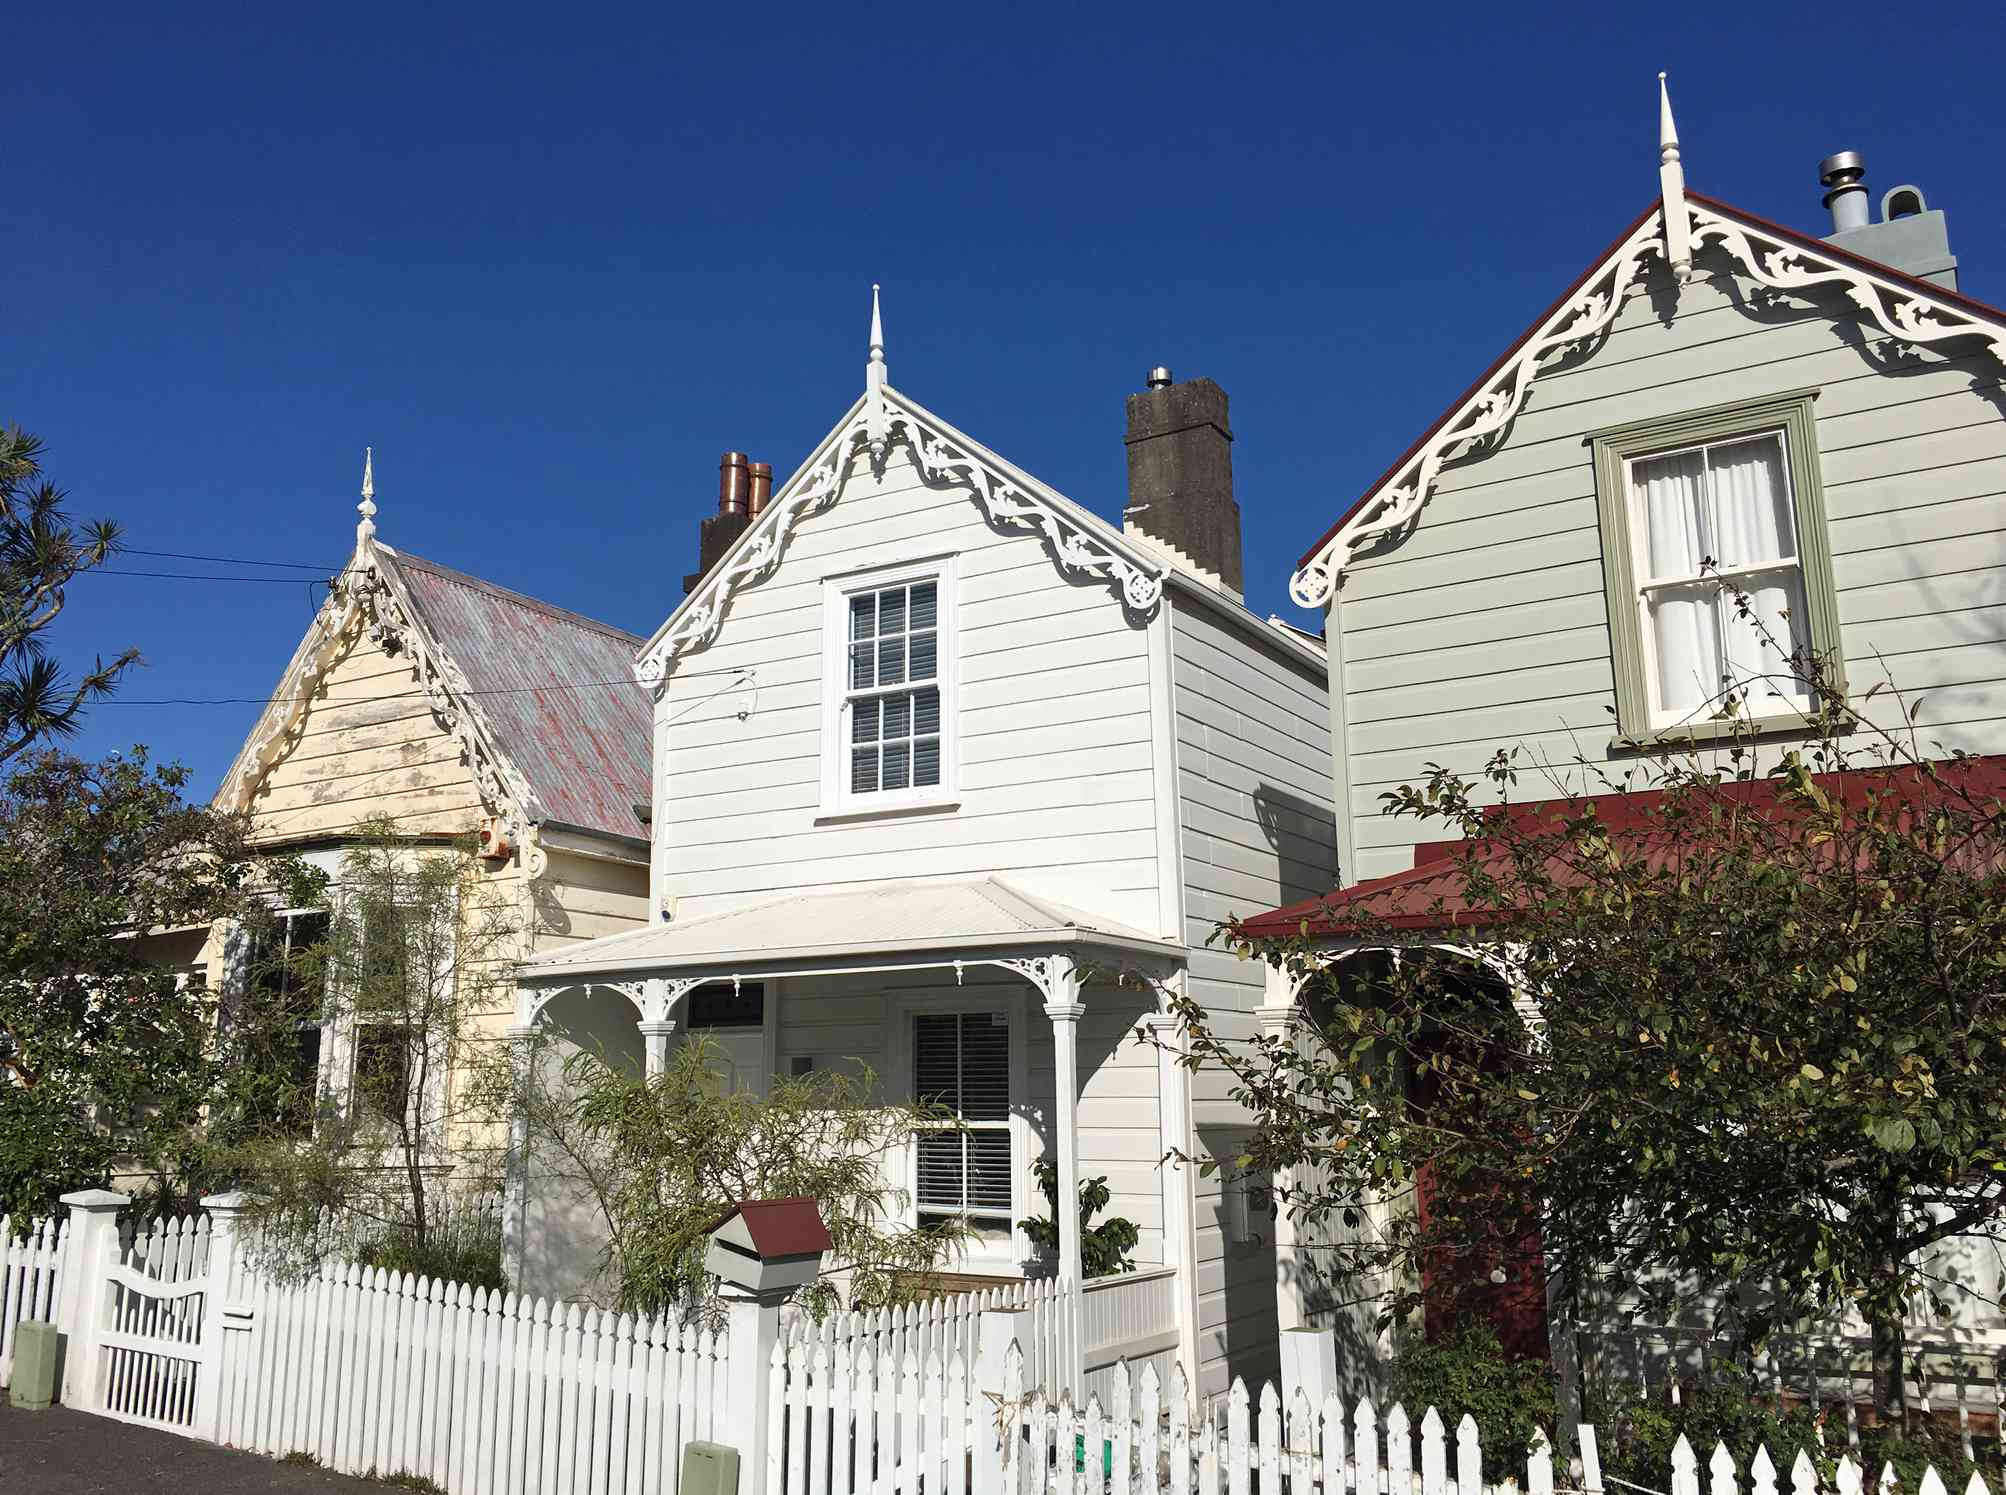 Victorian houses in Auckland New Zealand.